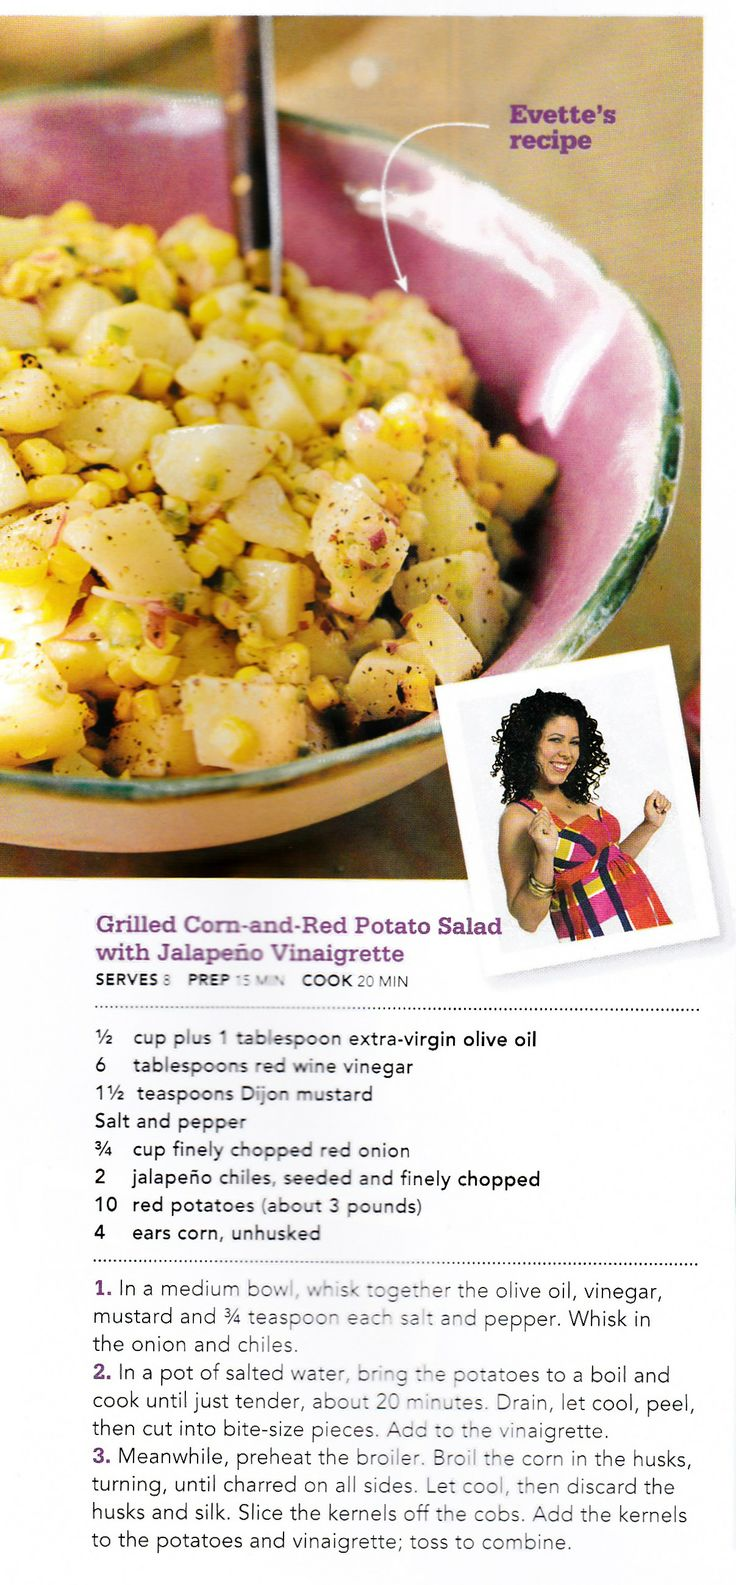 Grilled Corn-and-Red Potato Salad with Jalapeno Vinaigrette